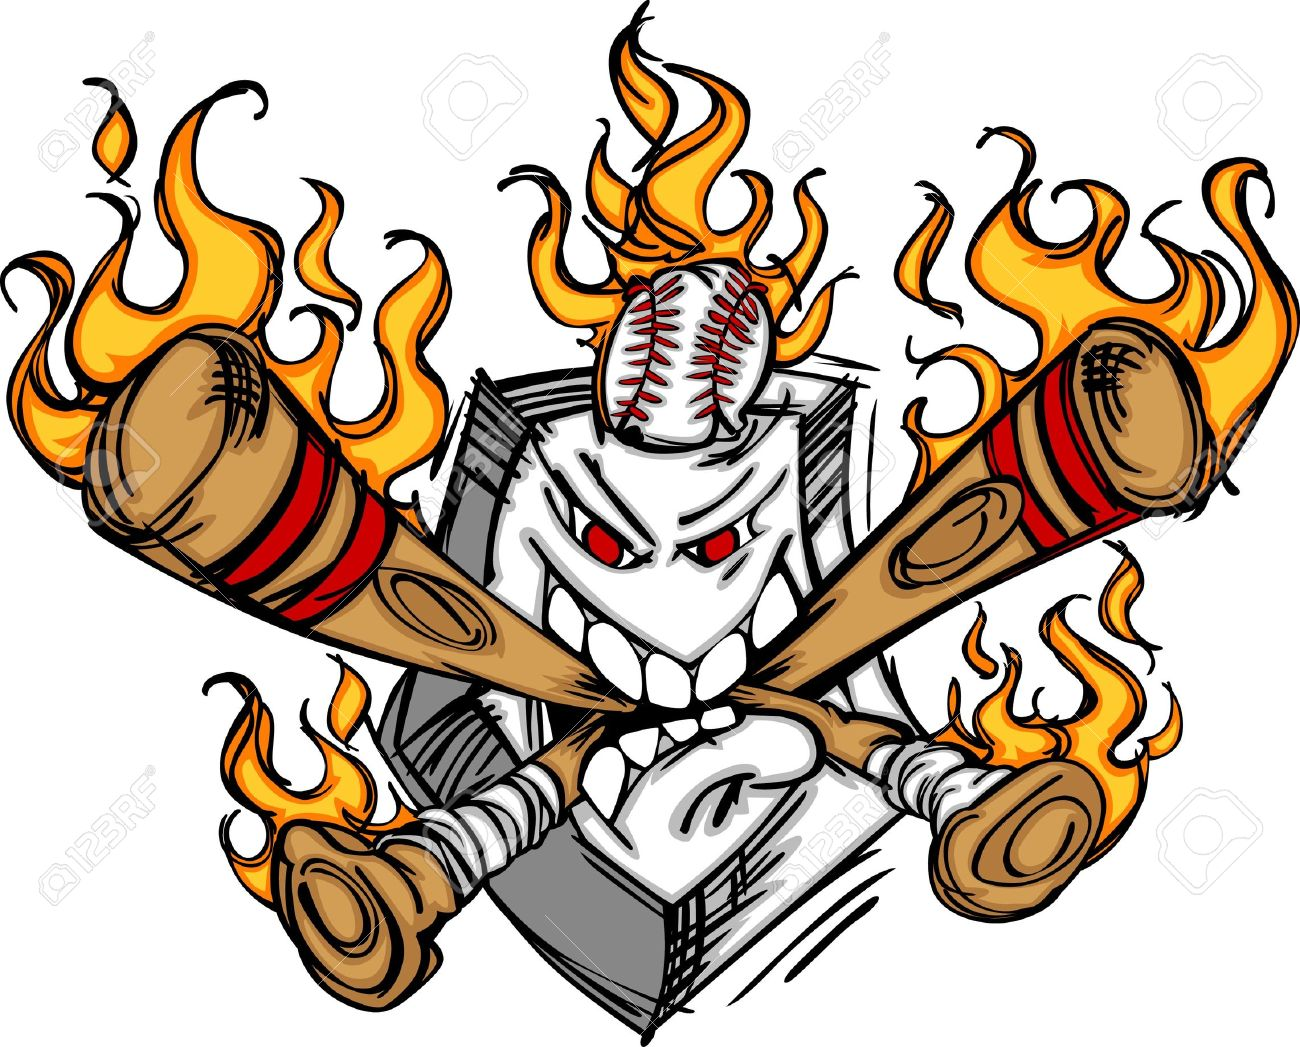 softball baseball plate and bats flaming cartoon logo royalty free rh 123rf com Softball Backgrounds Softball Logo Designs